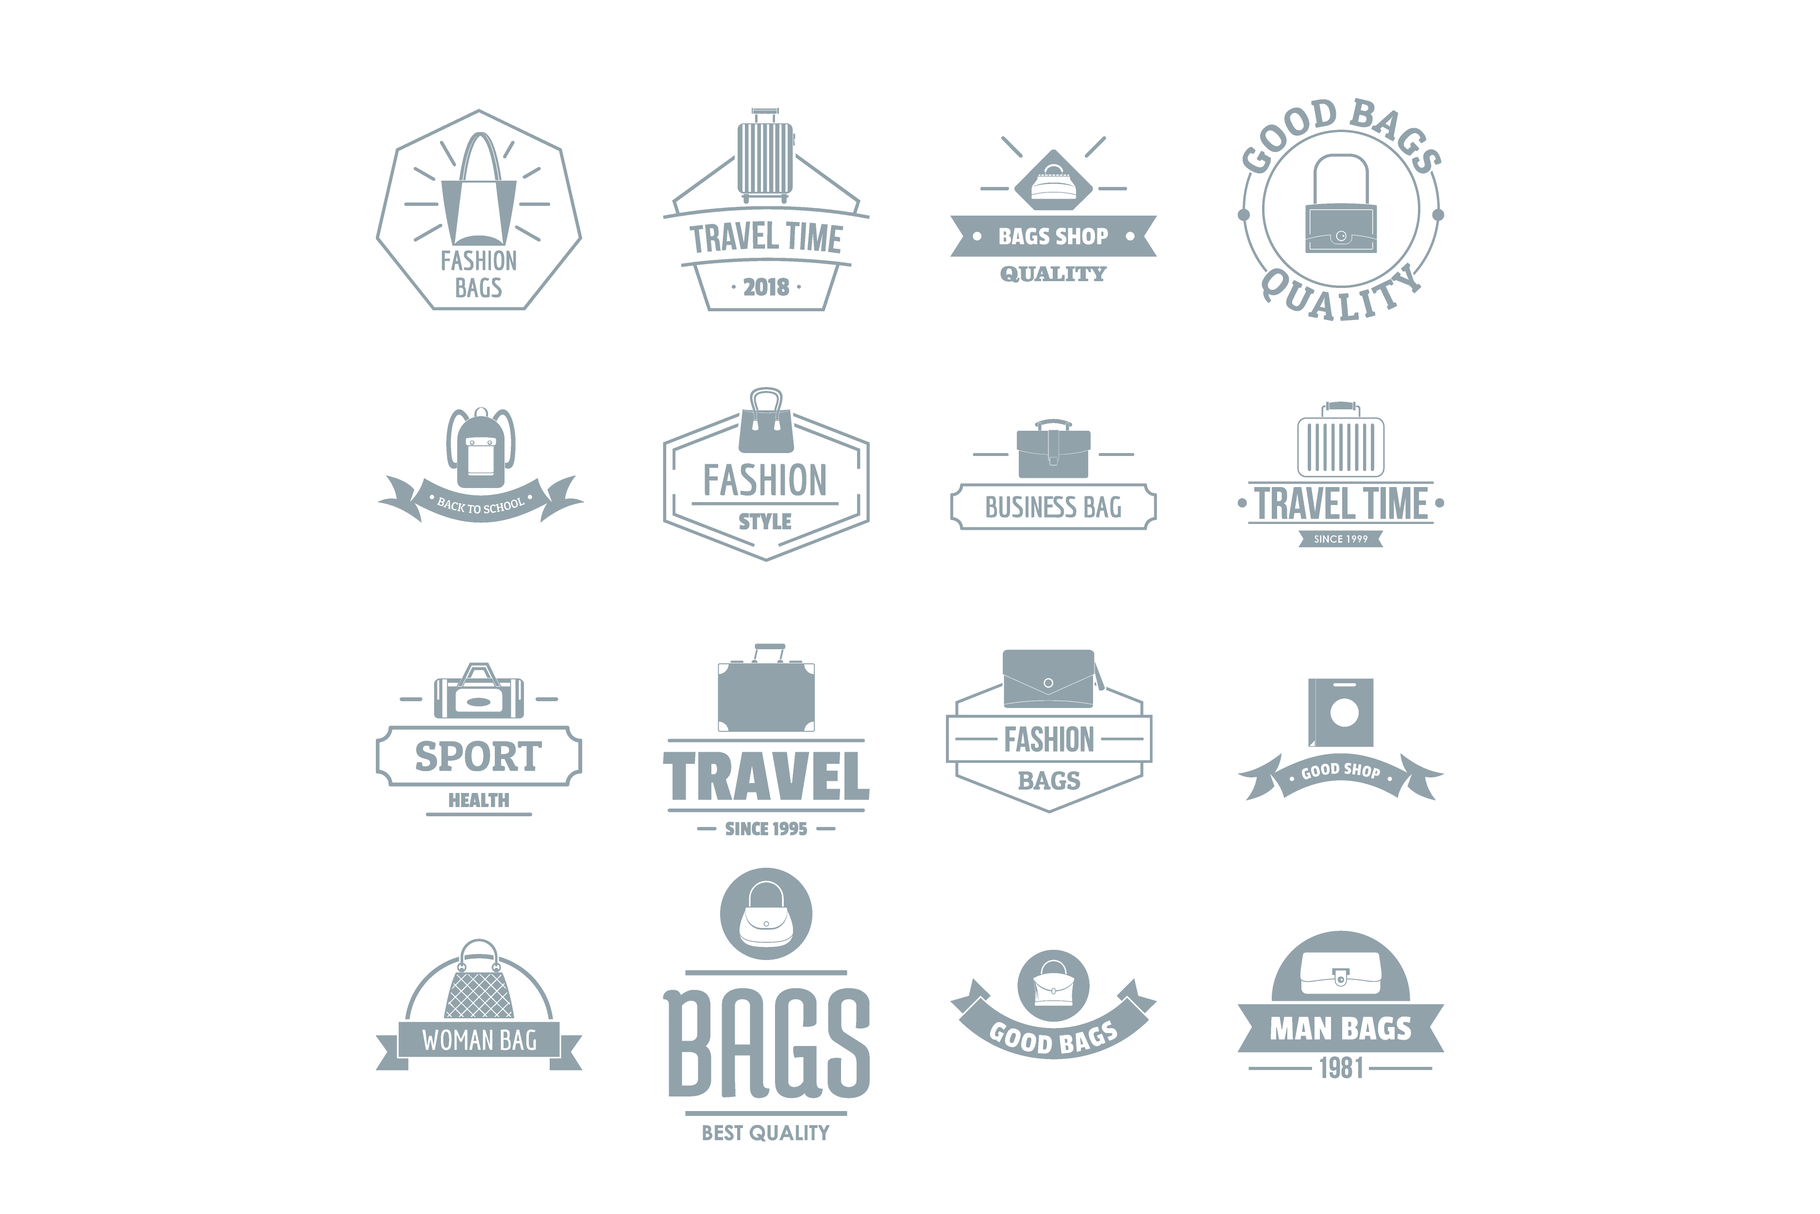 Travel baggage logo icons set, simple style example image 1